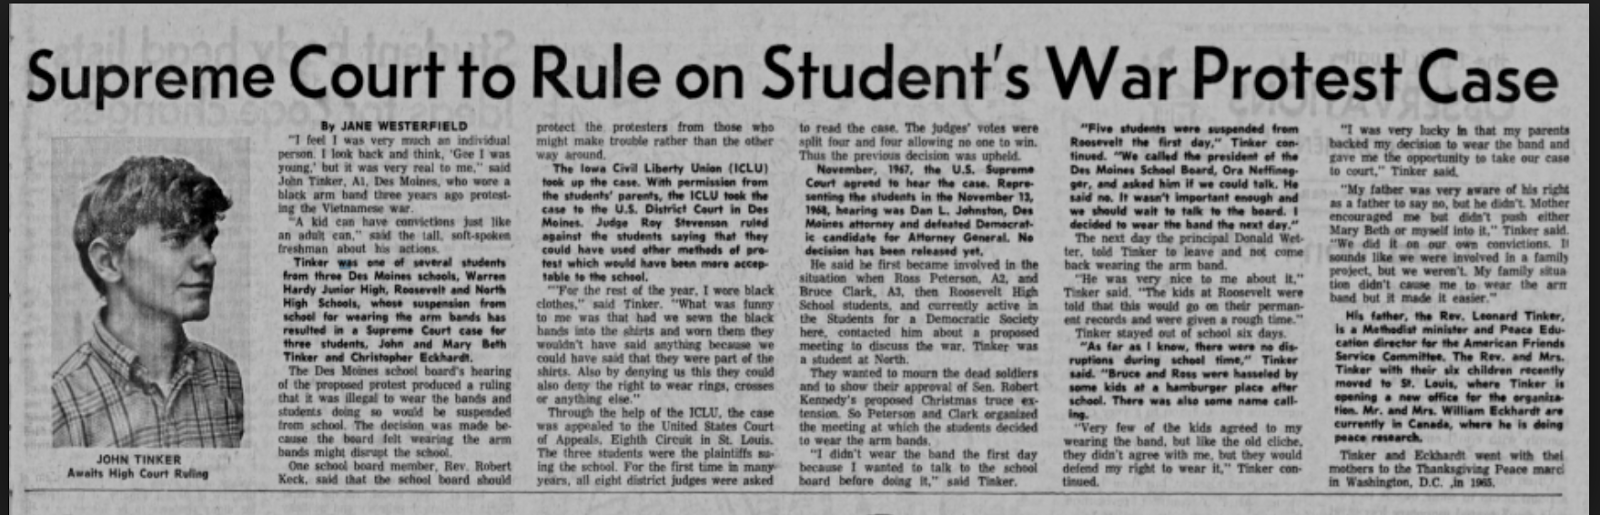 tinker v des moines ruling On december 16, mary beth tinker, a 13-year-old junior high student,  the oyez project at iit chicago-kent college of law, tinker v des moines (1969.